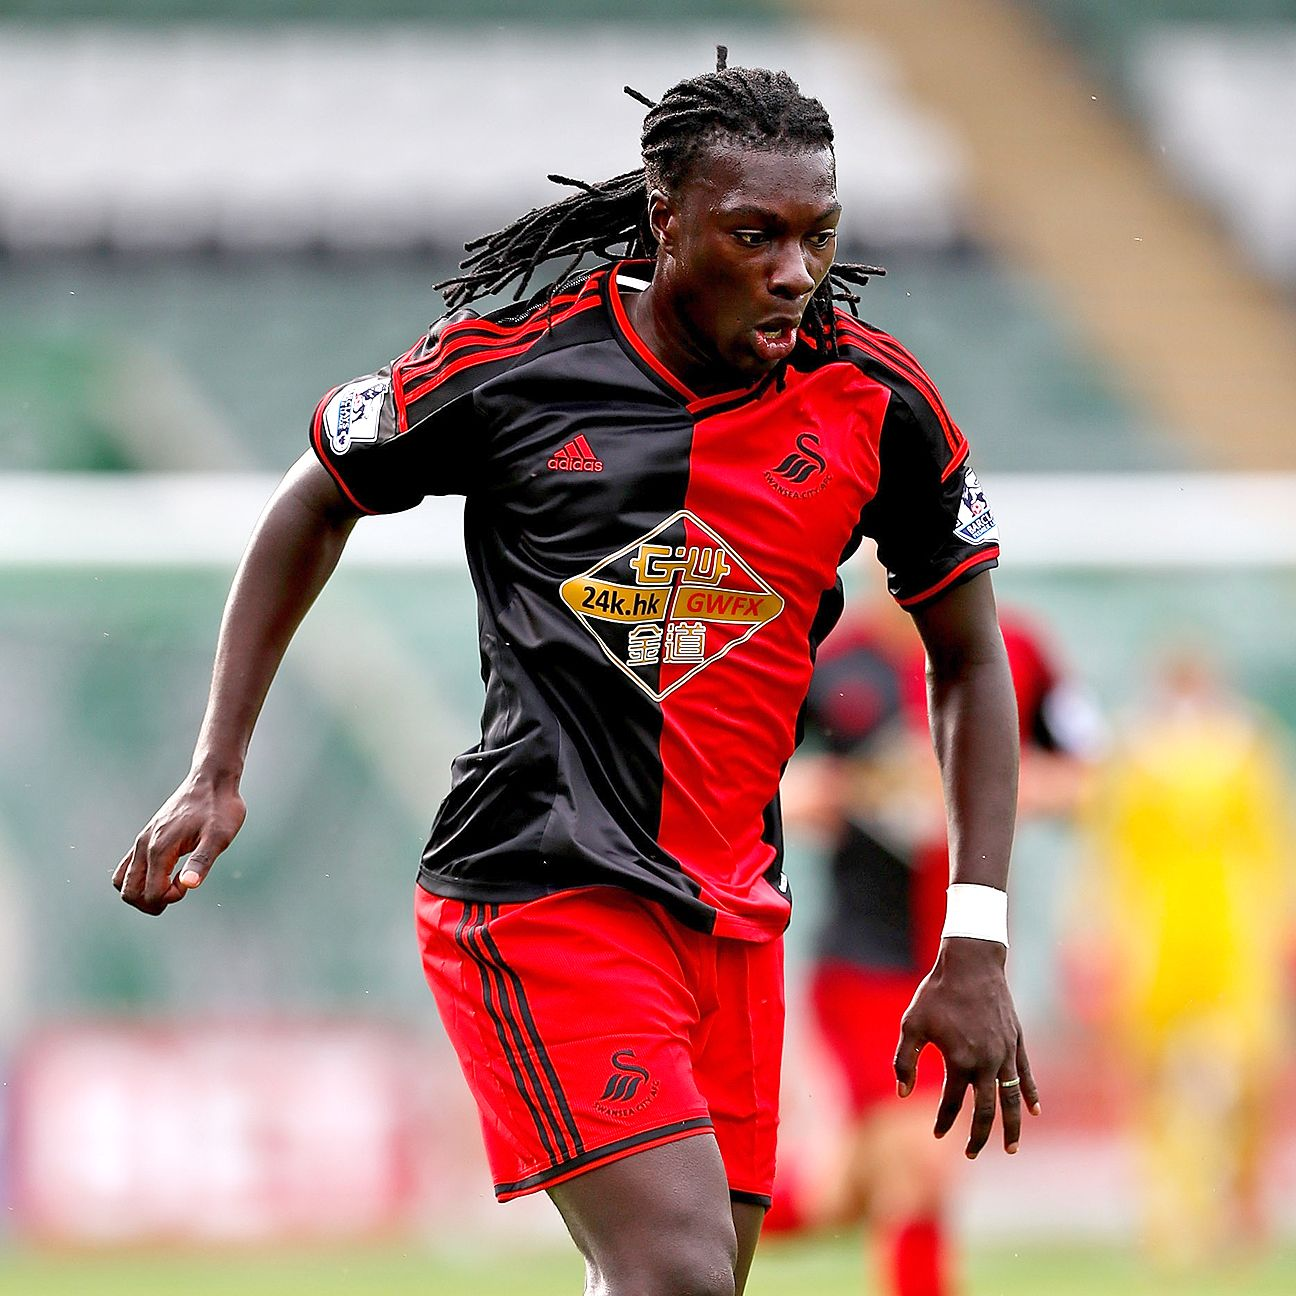 With Wilfried Bony close to a move to Manchester City, the Swansea striker spotlight shifts to Bafetimbi Gomis.